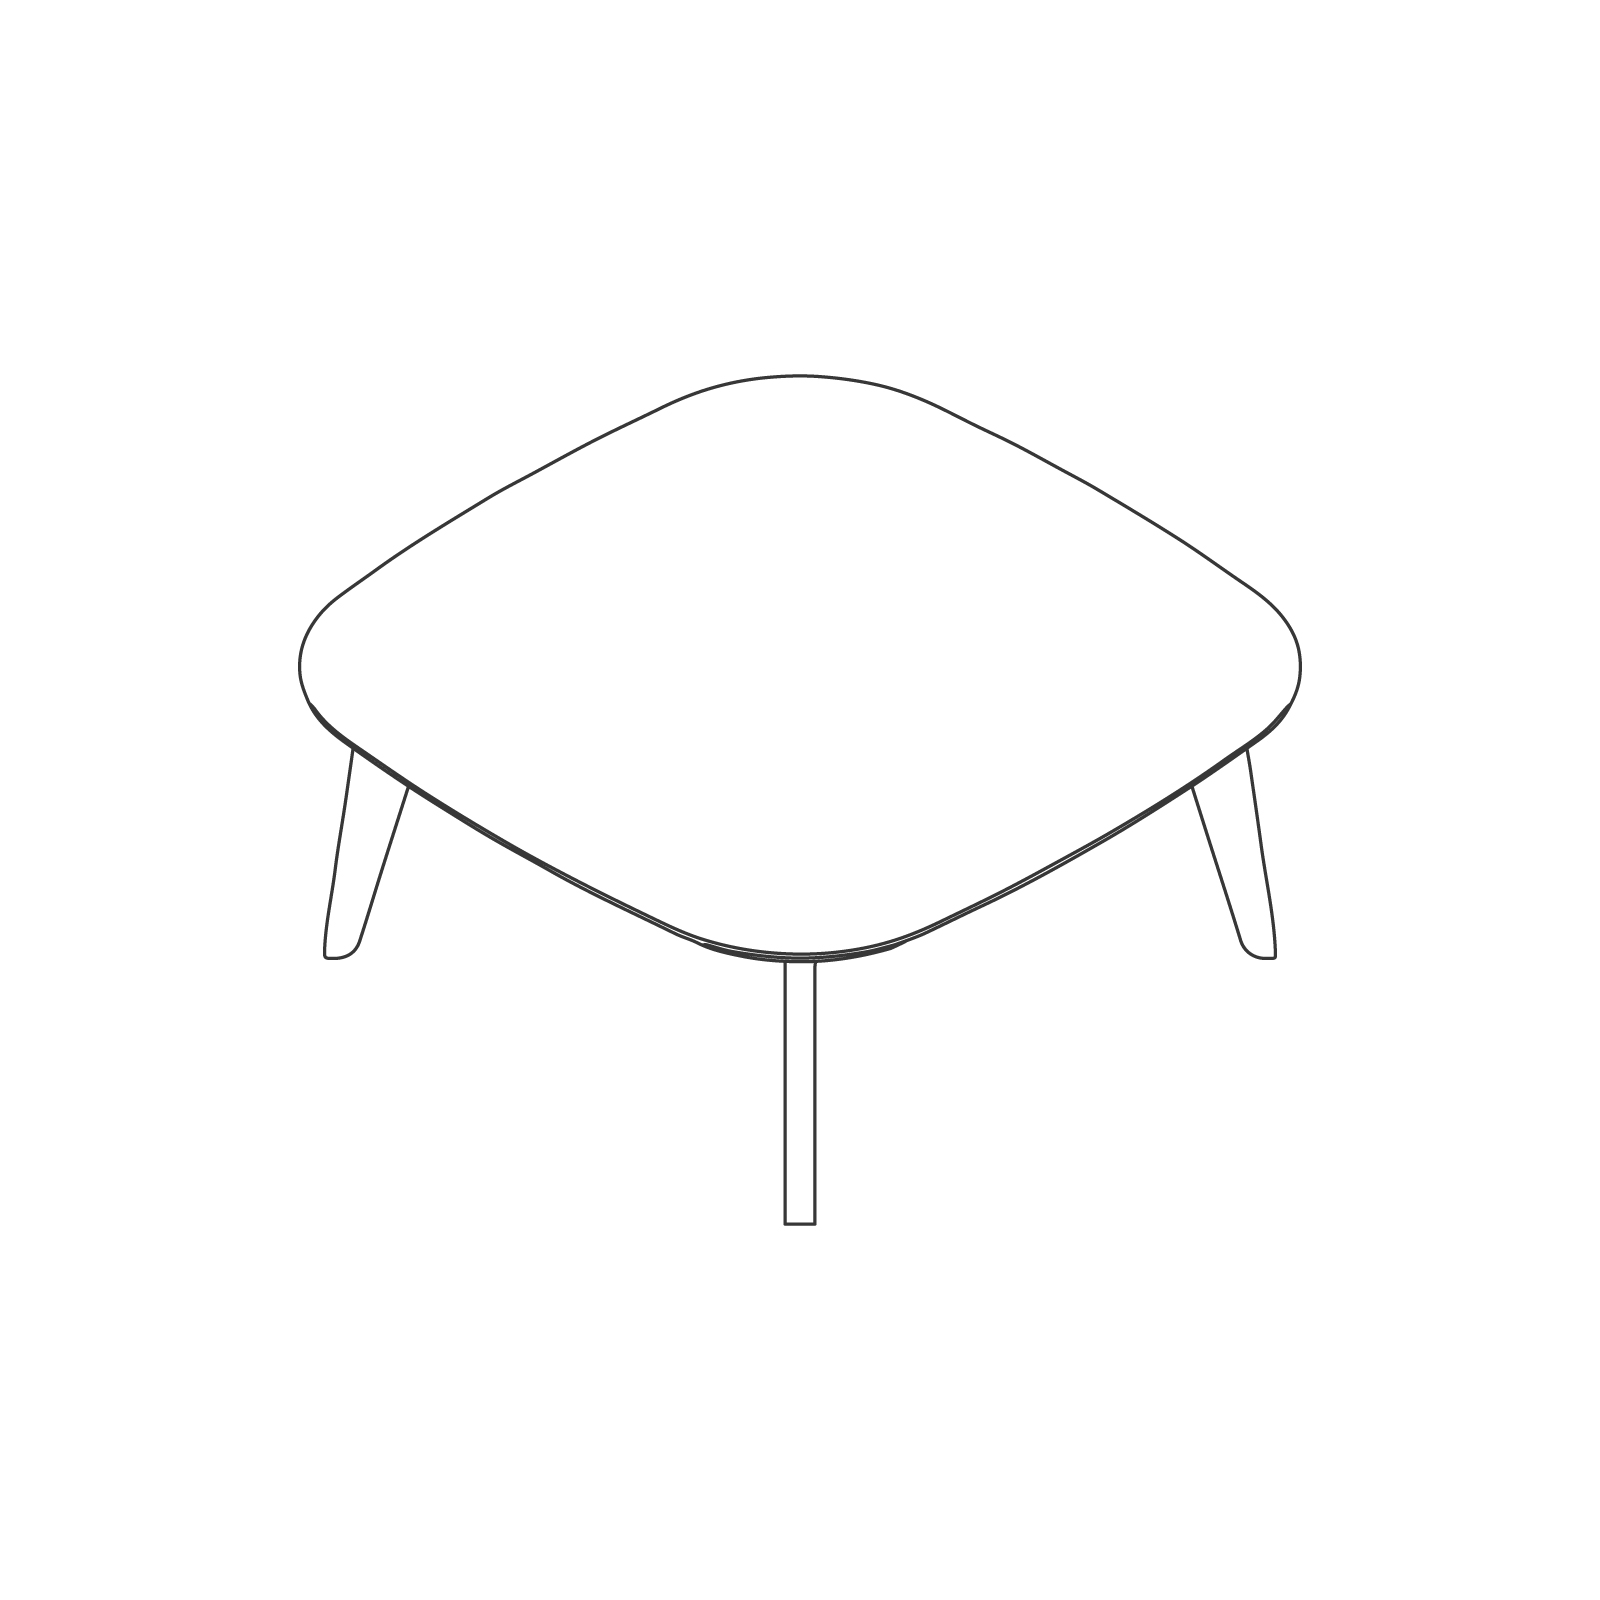 A line drawing of Dalby Coffee Table–Square.